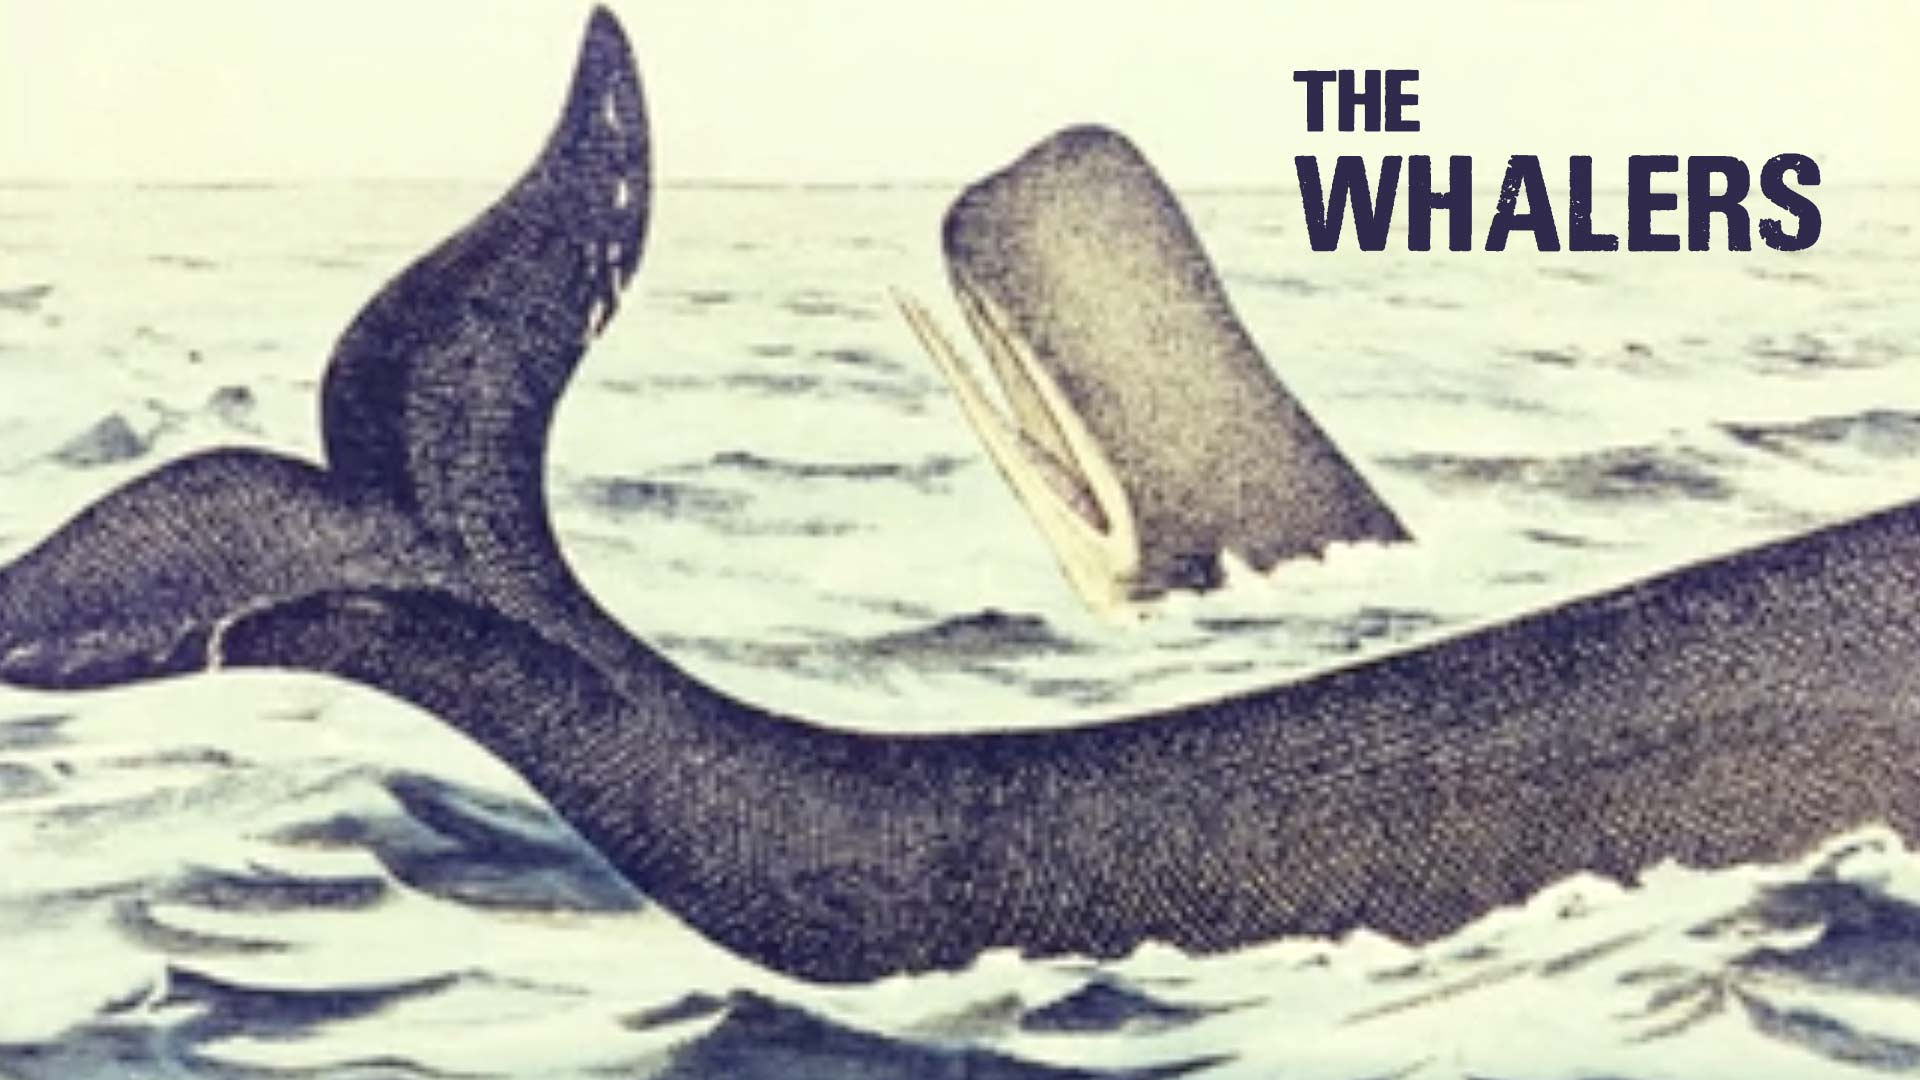 The Whalers - image